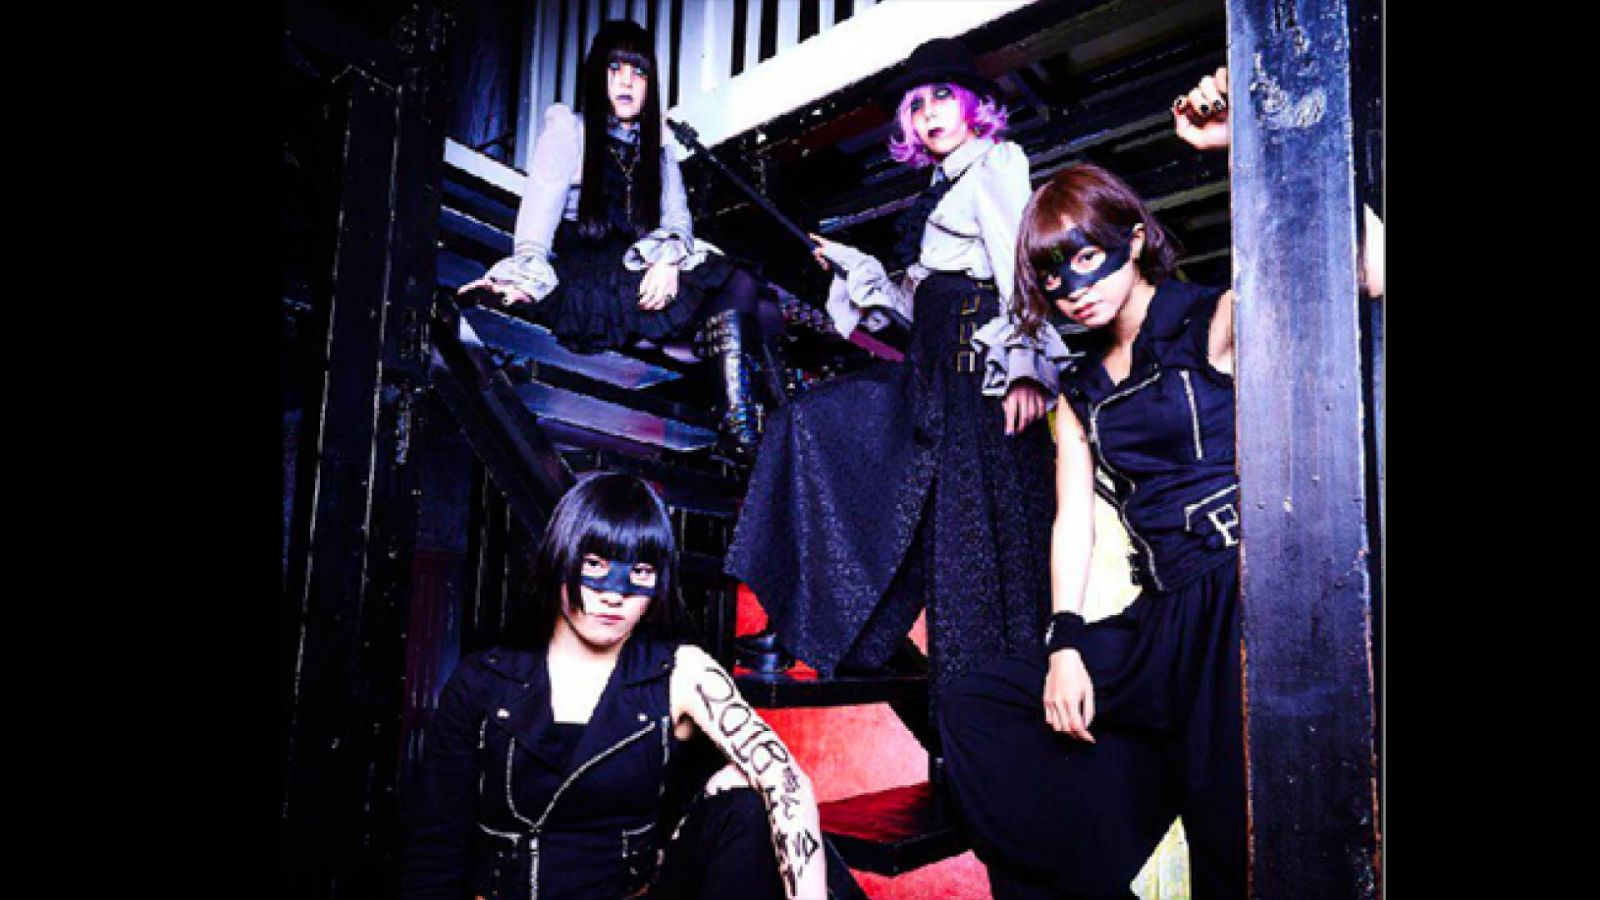 Screaming Sixties and The Heanacat to Release Collaboration Mini-Album © Screaming Sixties x The Heanacat